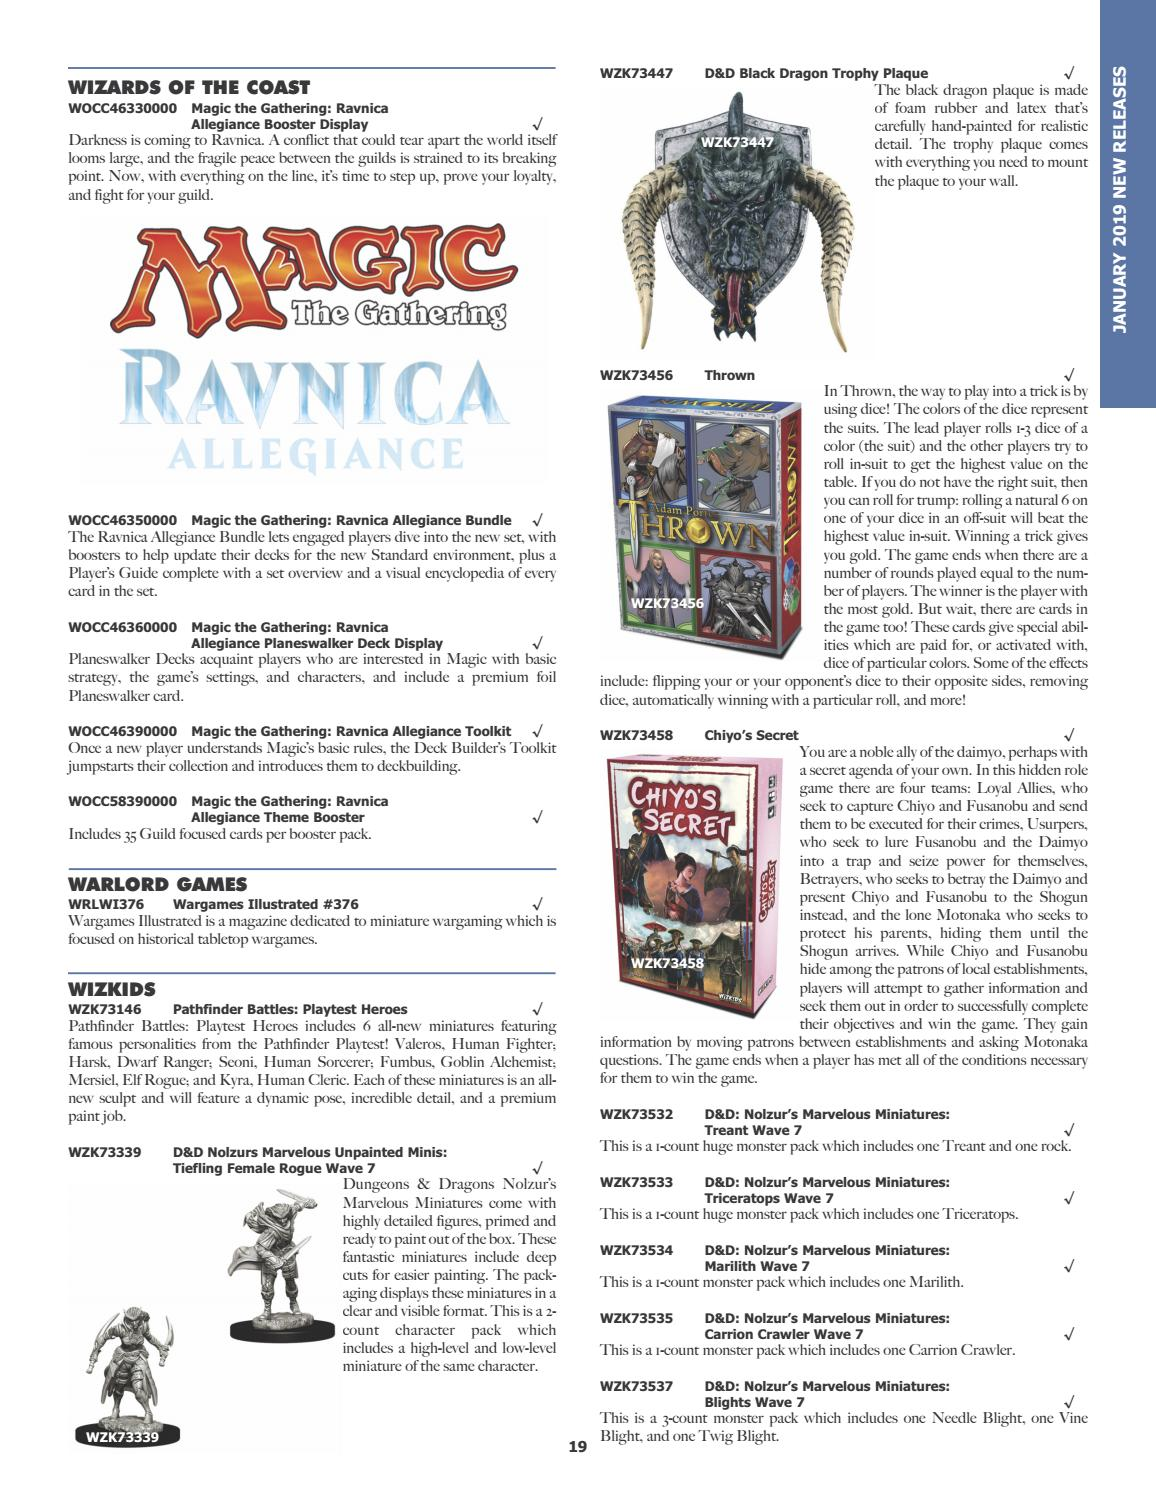 Meeple Monthly Magazine - November Issue by ACD Distribution - issuu